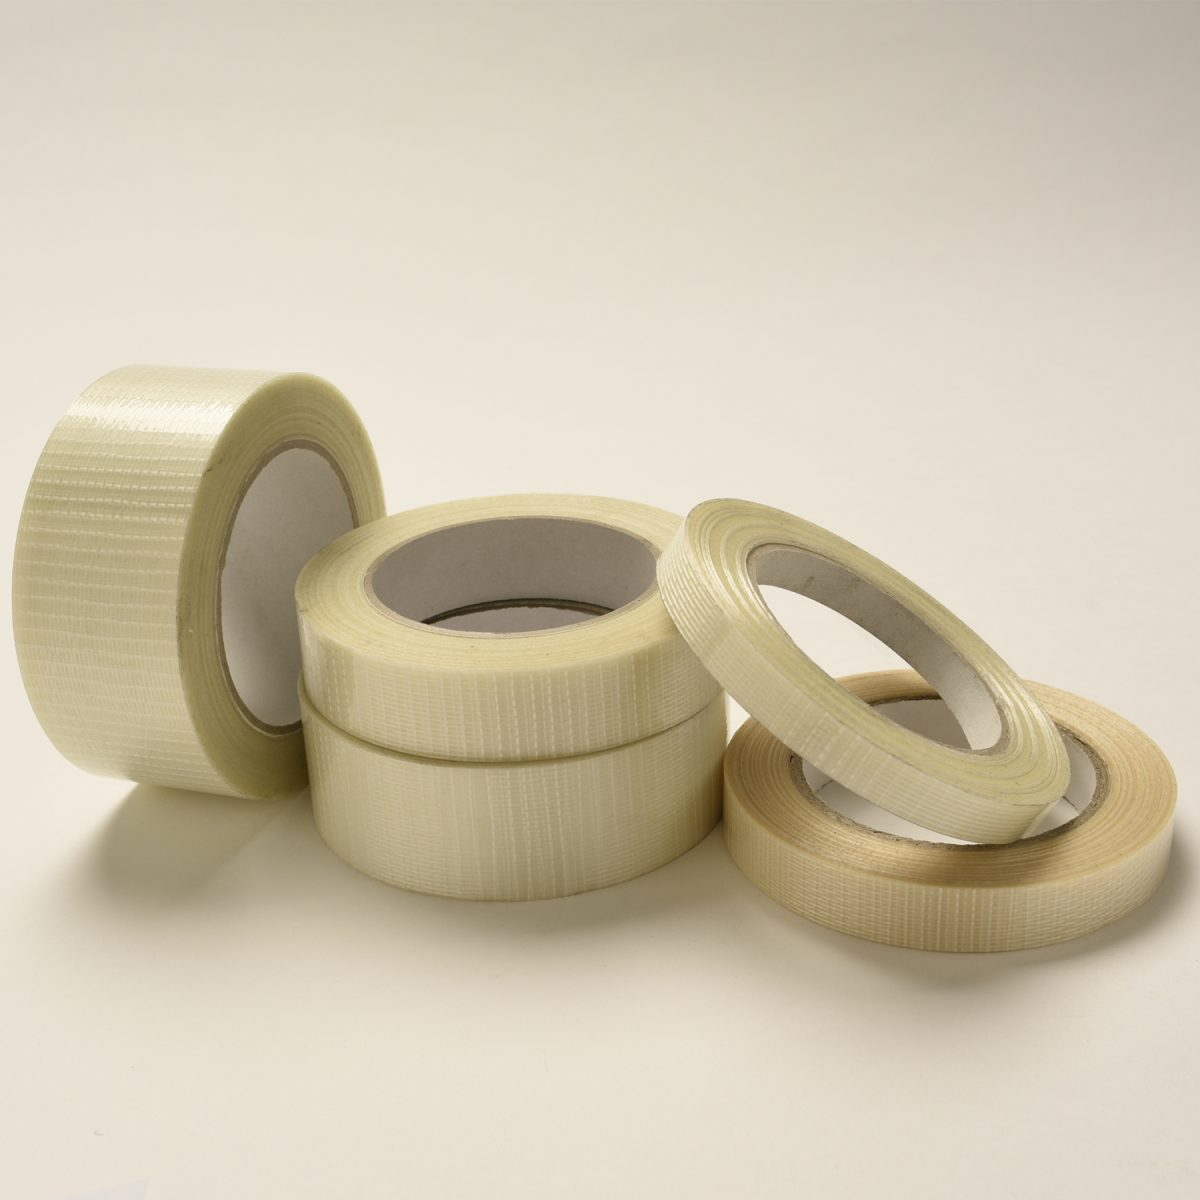 Filament & Strapping Tapes - What you need to know